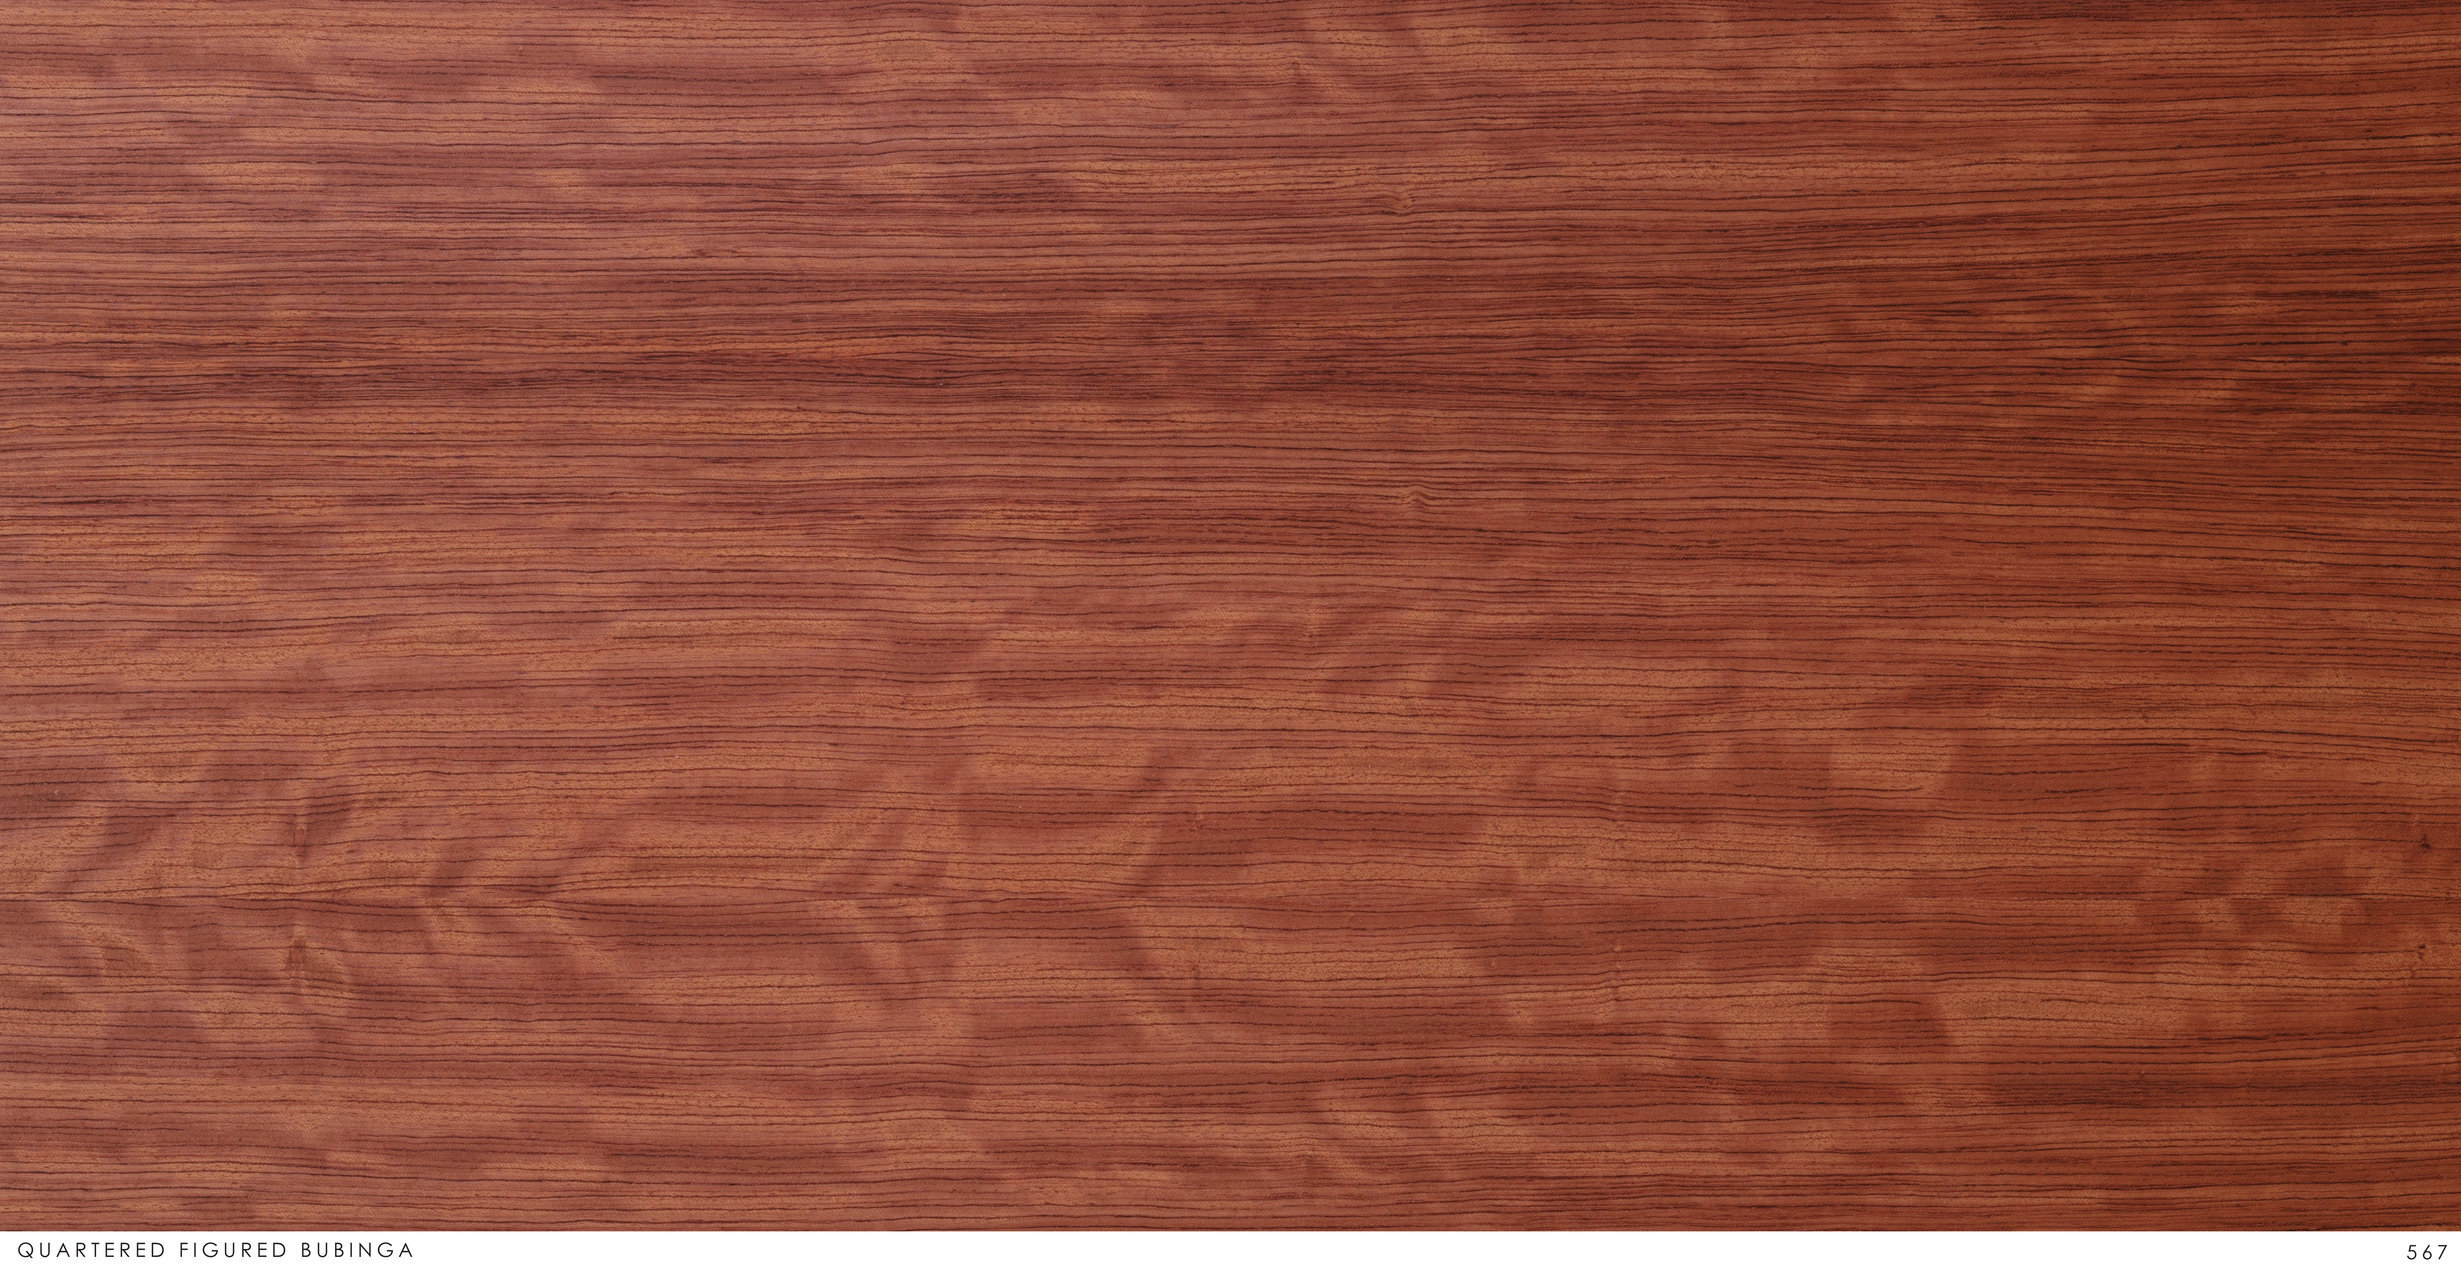 QUARTERED FIGURED BUBINGA 567.jpg